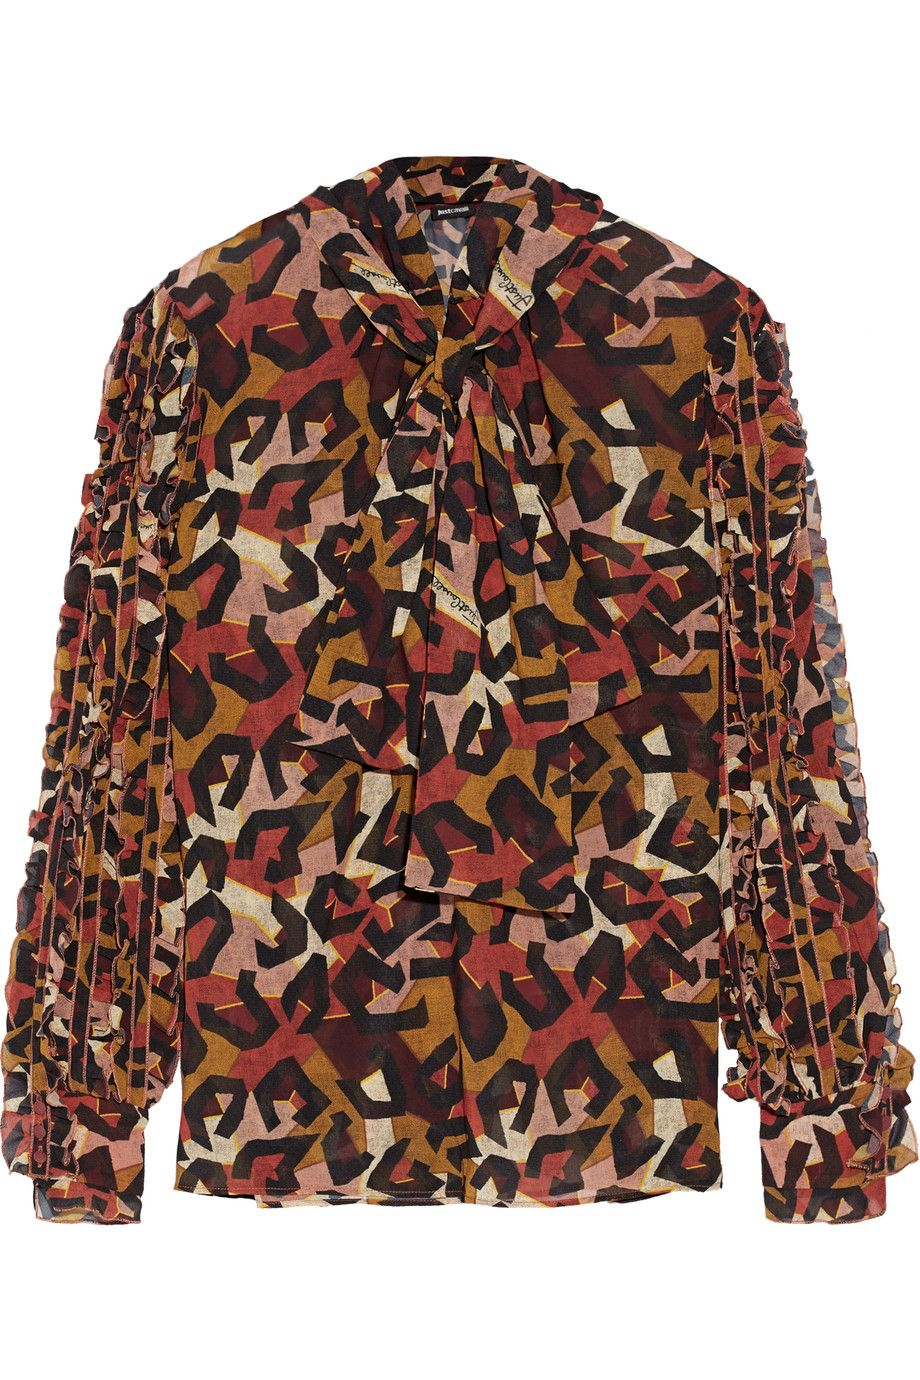 JUST CAVALLI Ruffle-Trimmed Printed Georgette Top. #justcavalli #cloth #top